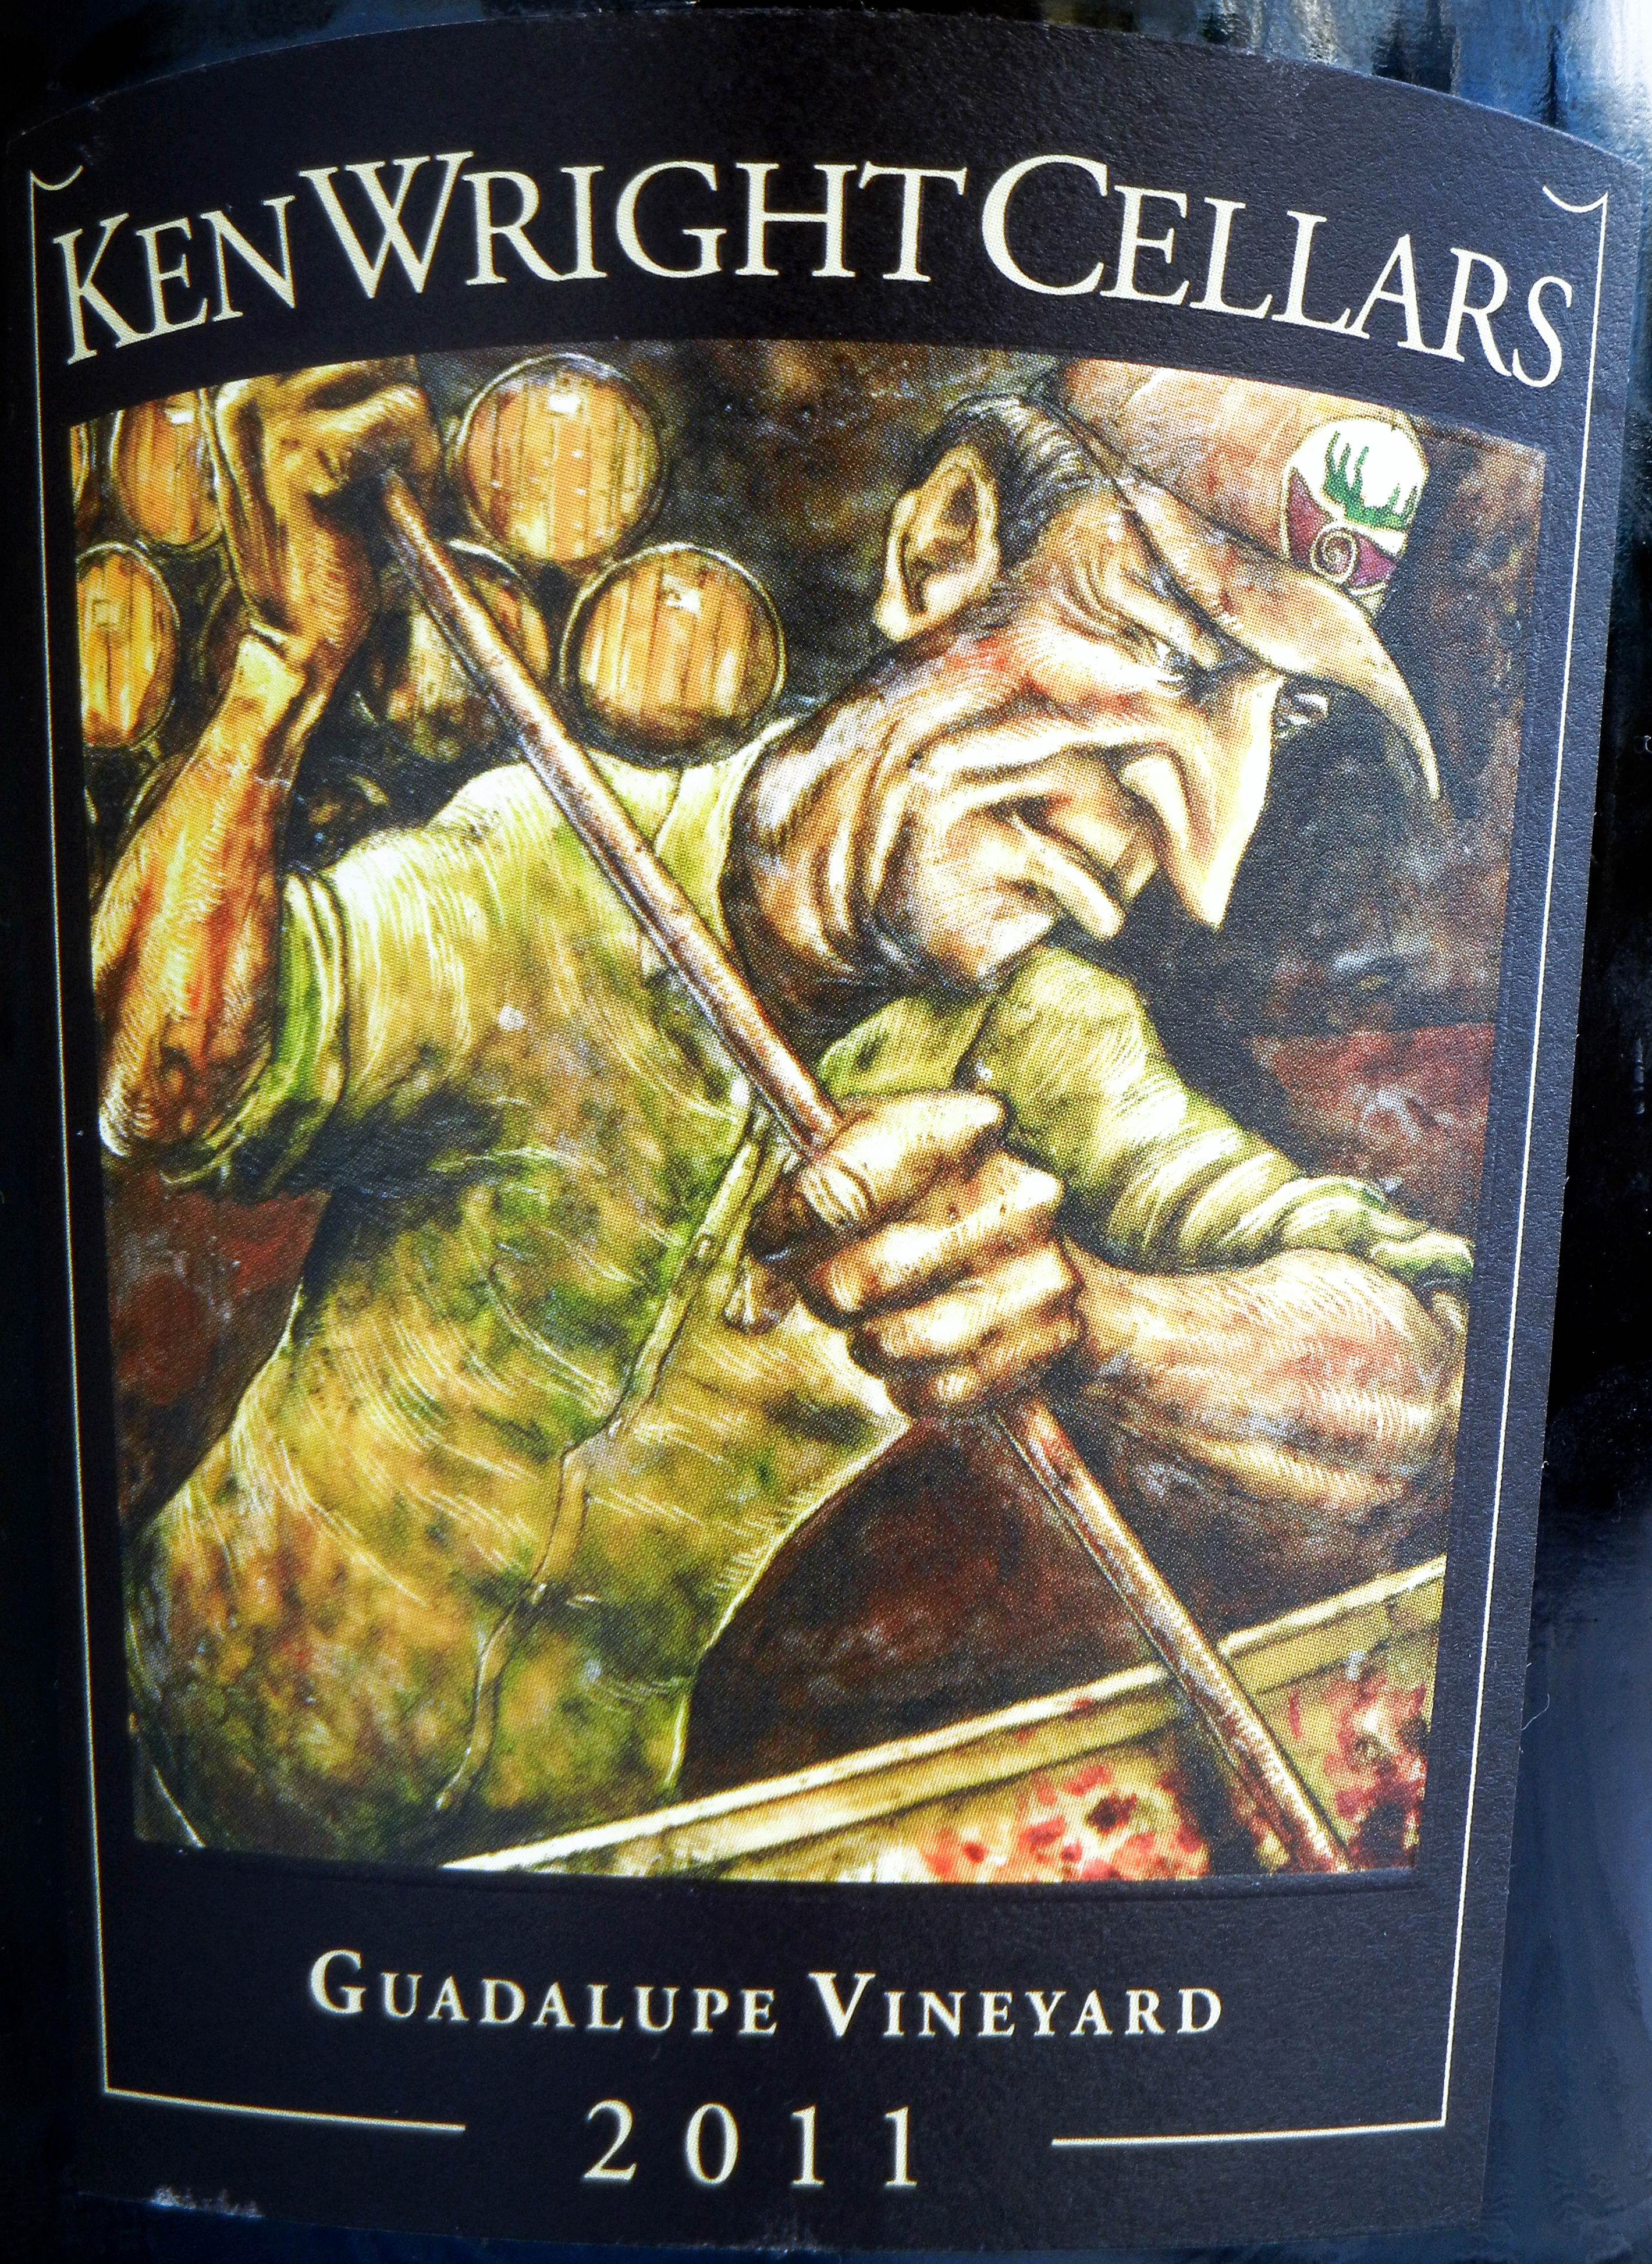 Ken Wright Cellars Guadalupe Vineyard Pinot Noir 2011 Label - BC Pinot Noir Tasting Review 17